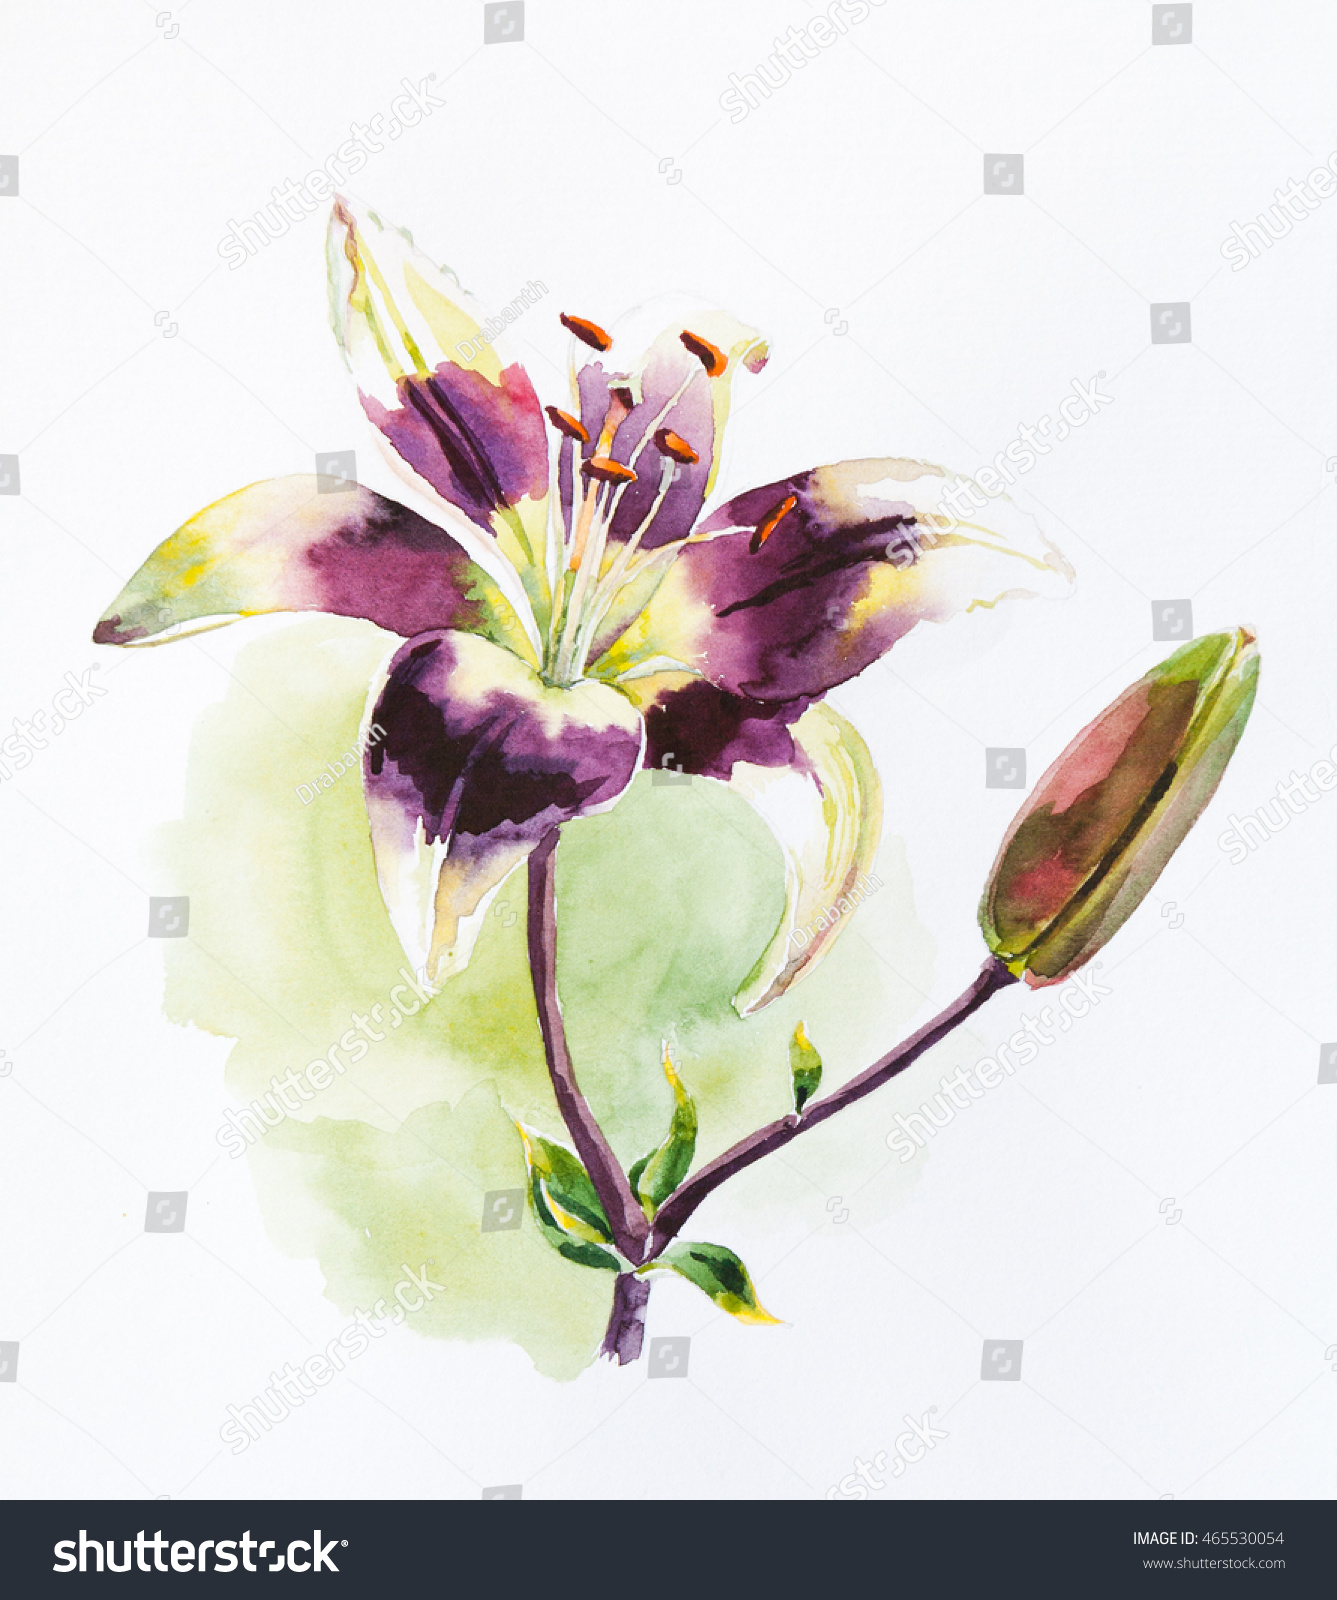 Watercolor painting purple lily flower stock illustration 465530054 watercolor painting of purple lily flower izmirmasajfo